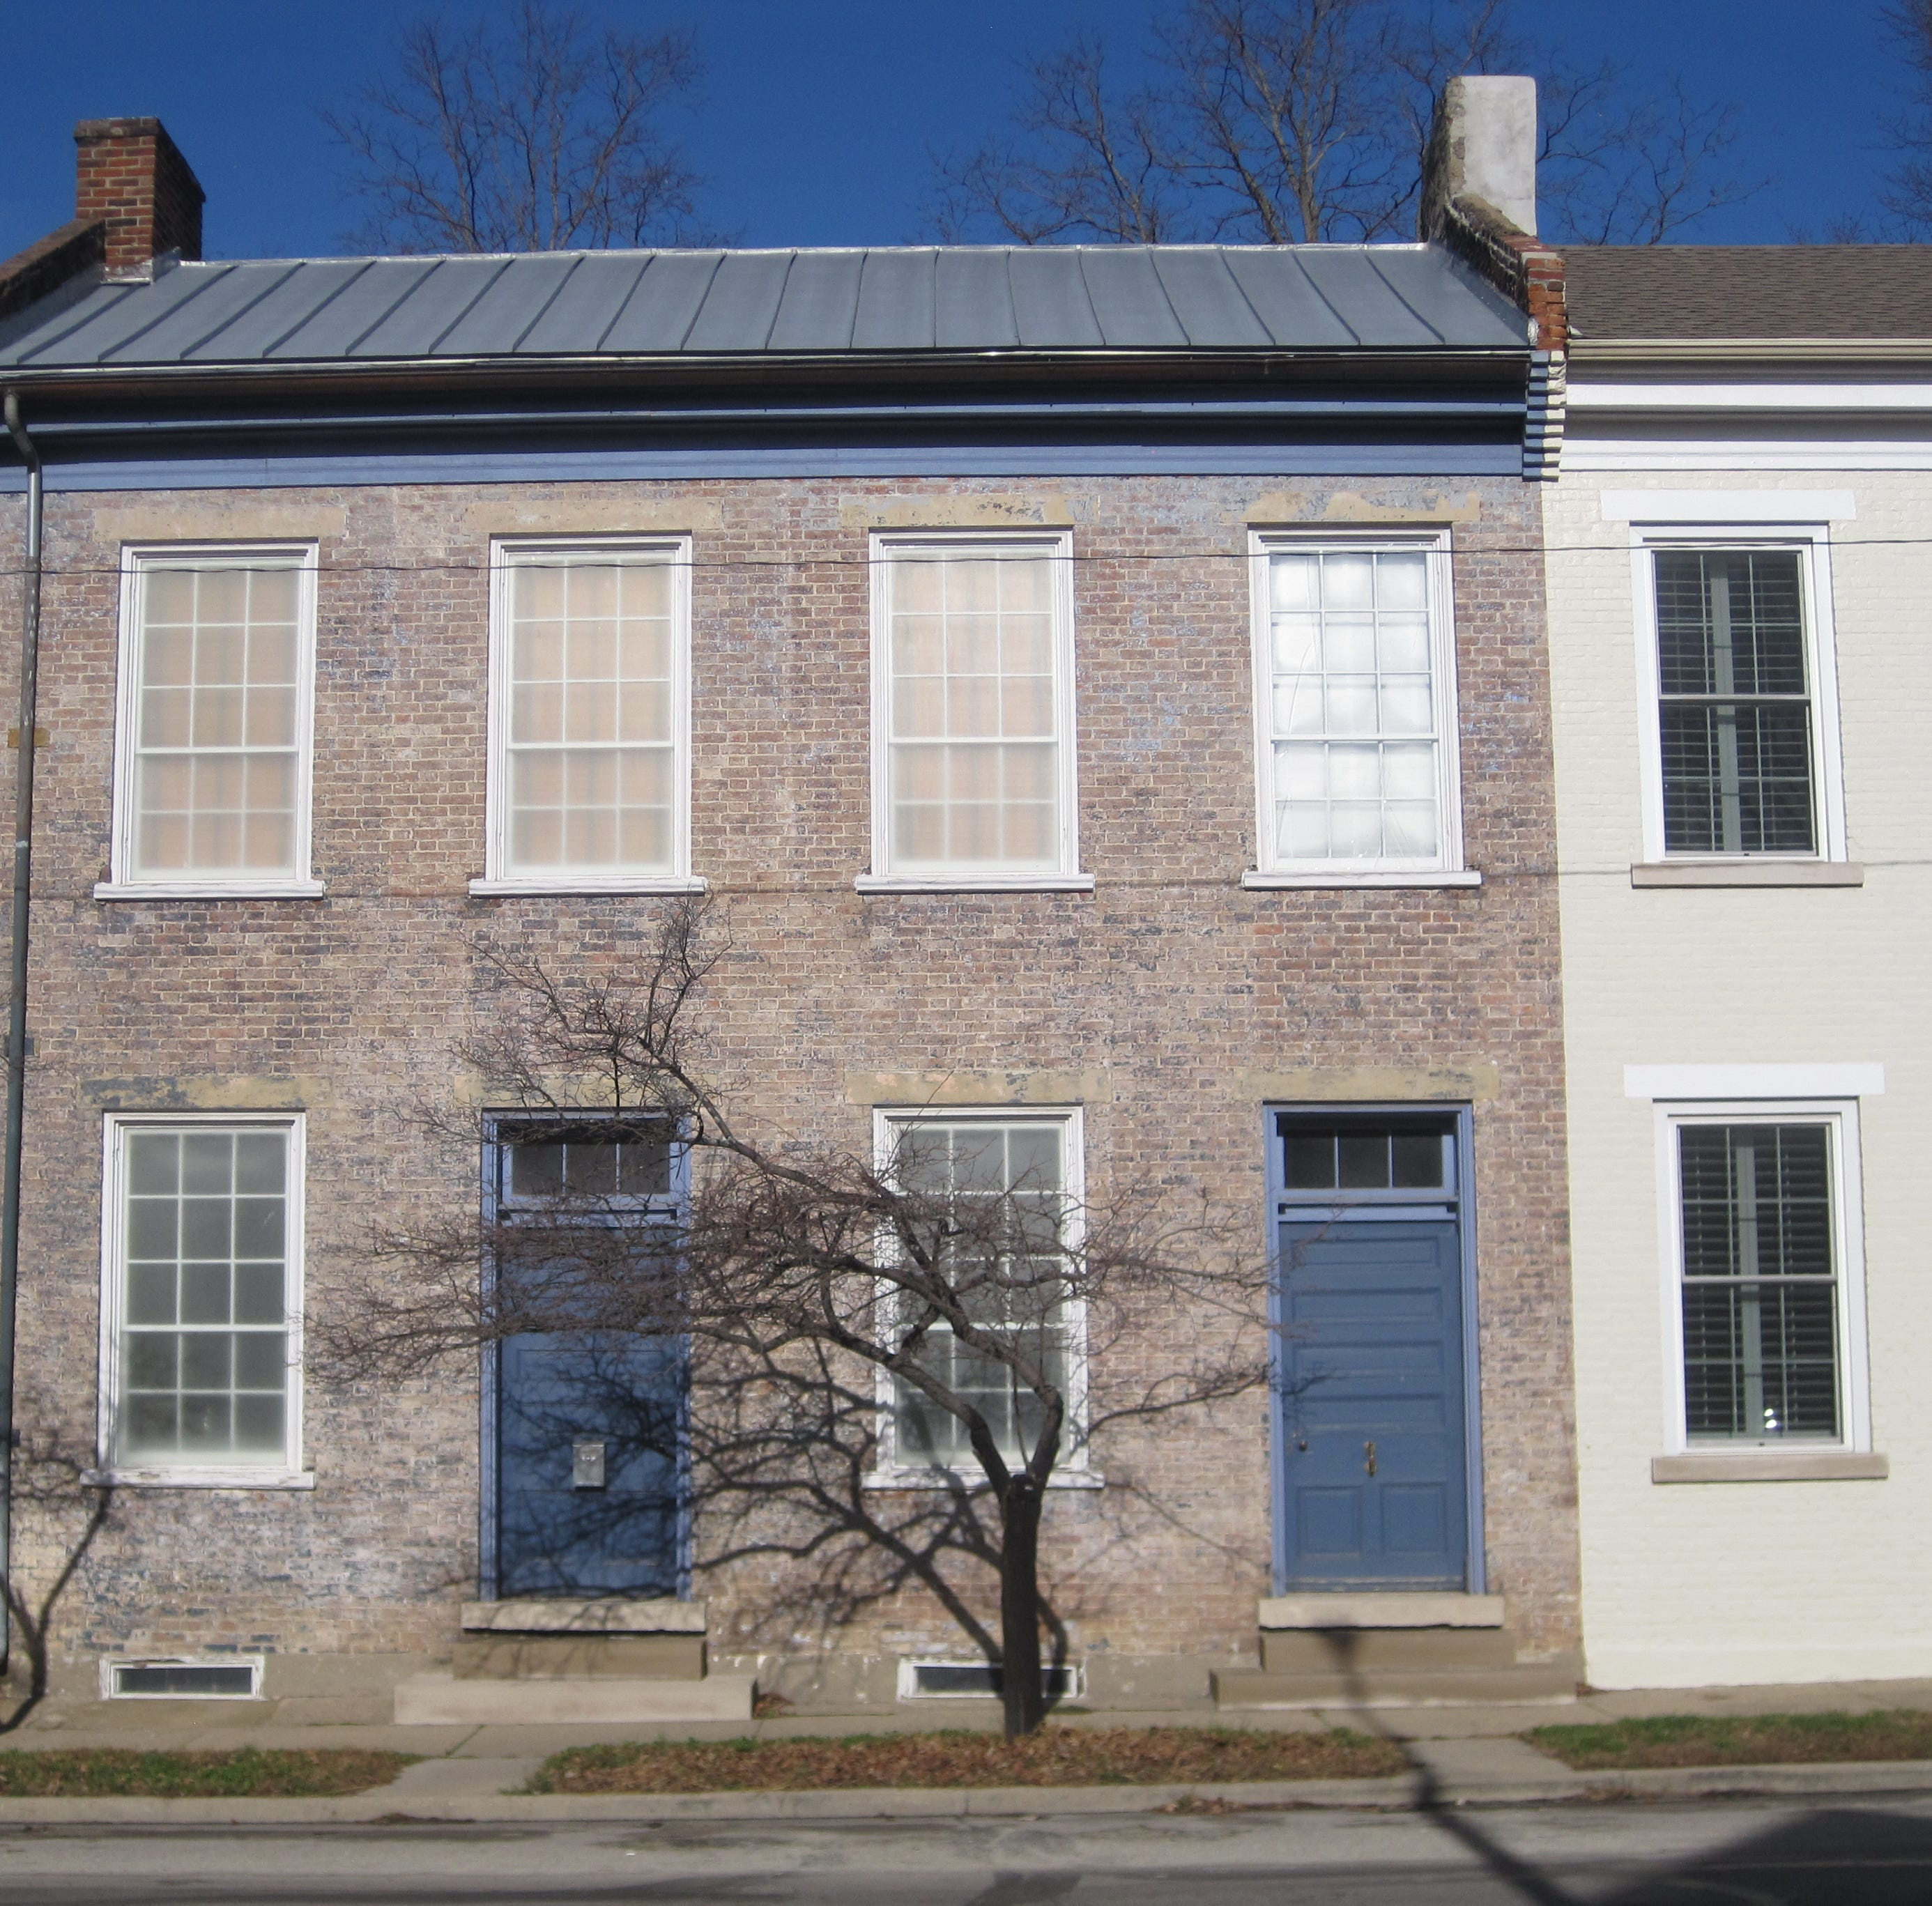 Tour features historic homes along National Road